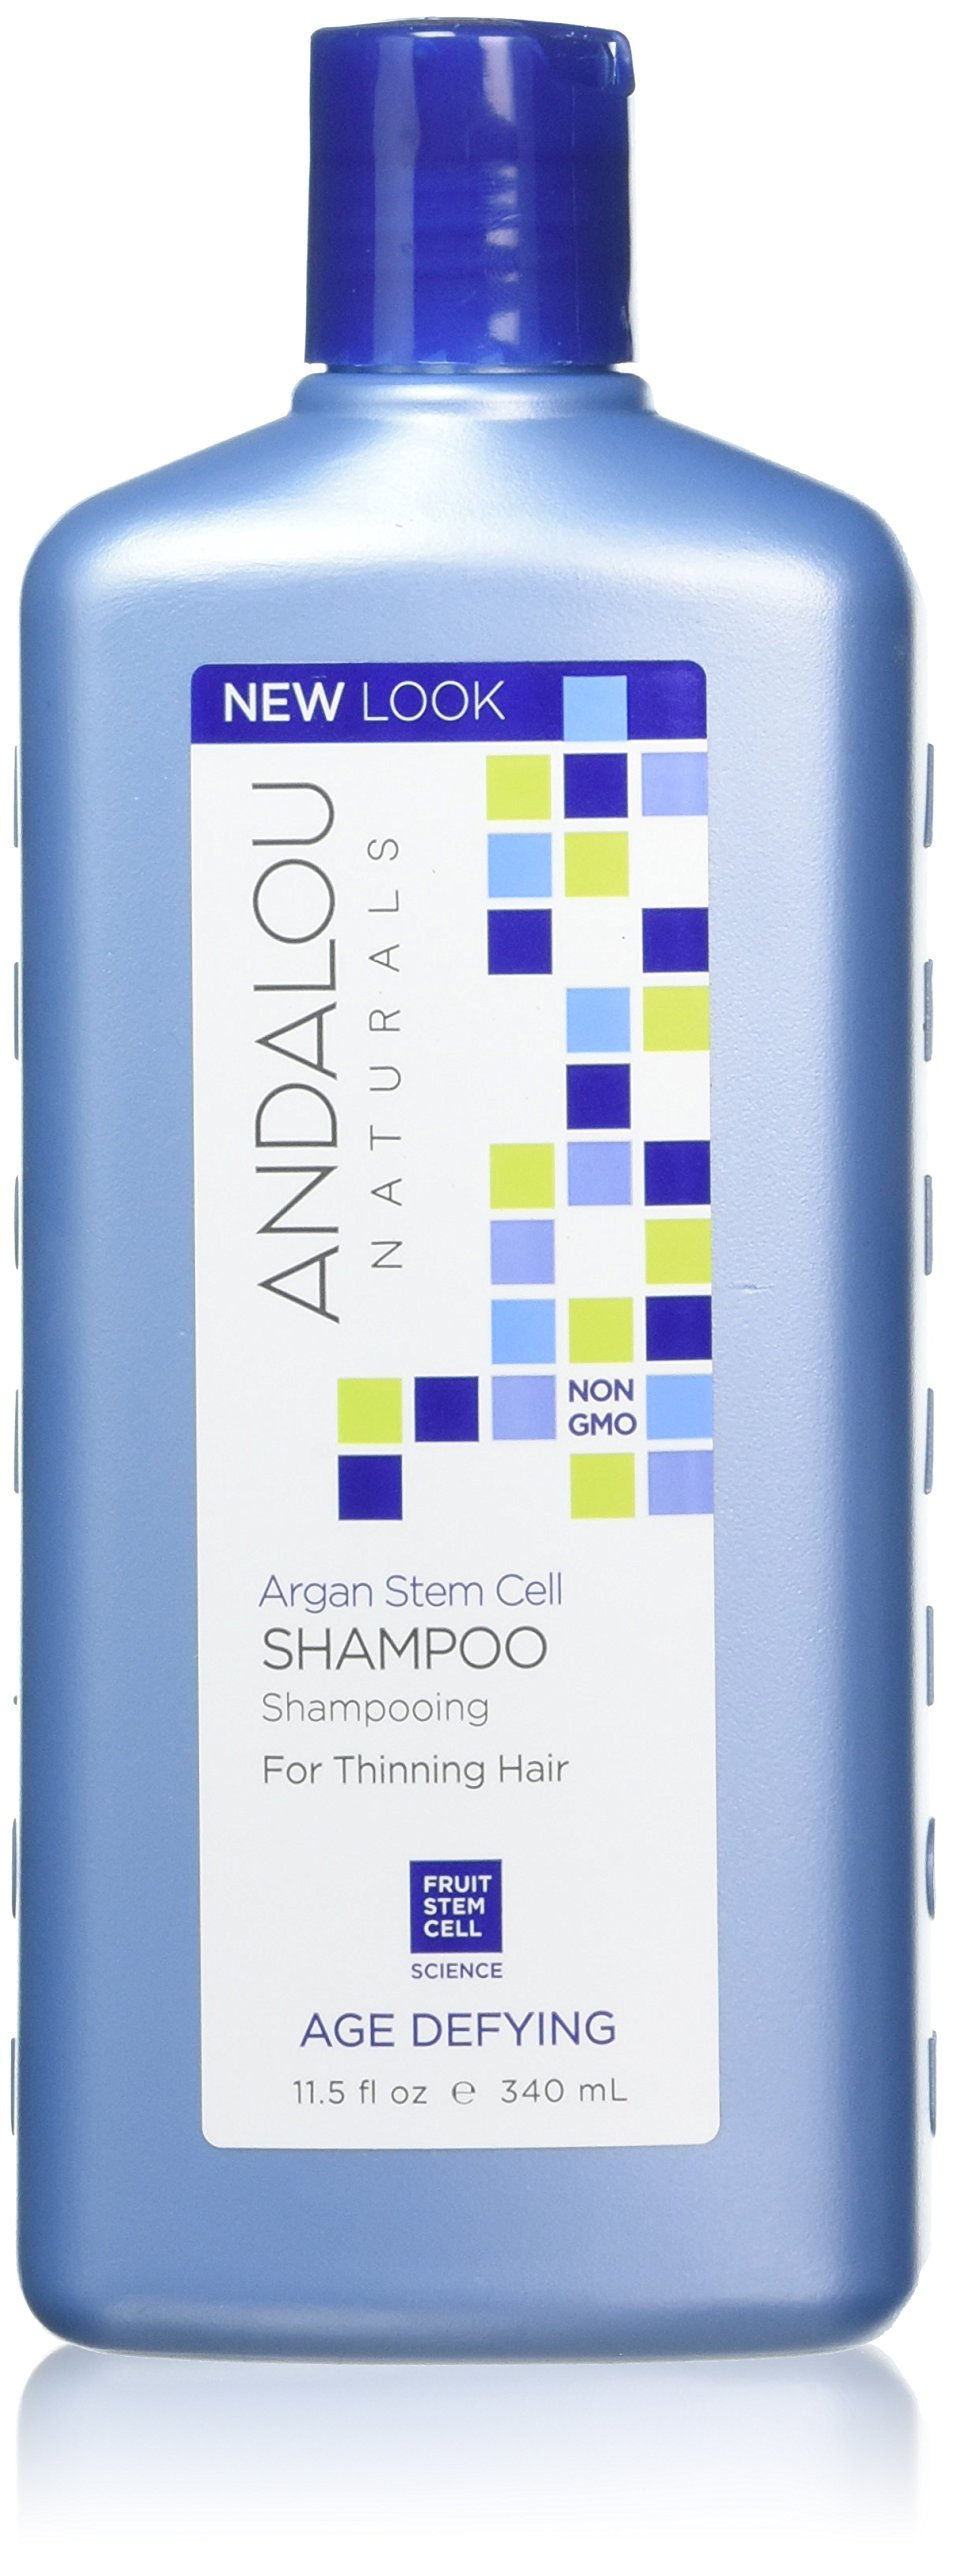 Andalou Naturals Argan Stem Cell Age Defying Shampoo, 11.5 Ounce, Thinning Hair Conditioner Helps Strengthen & Smooth Hair